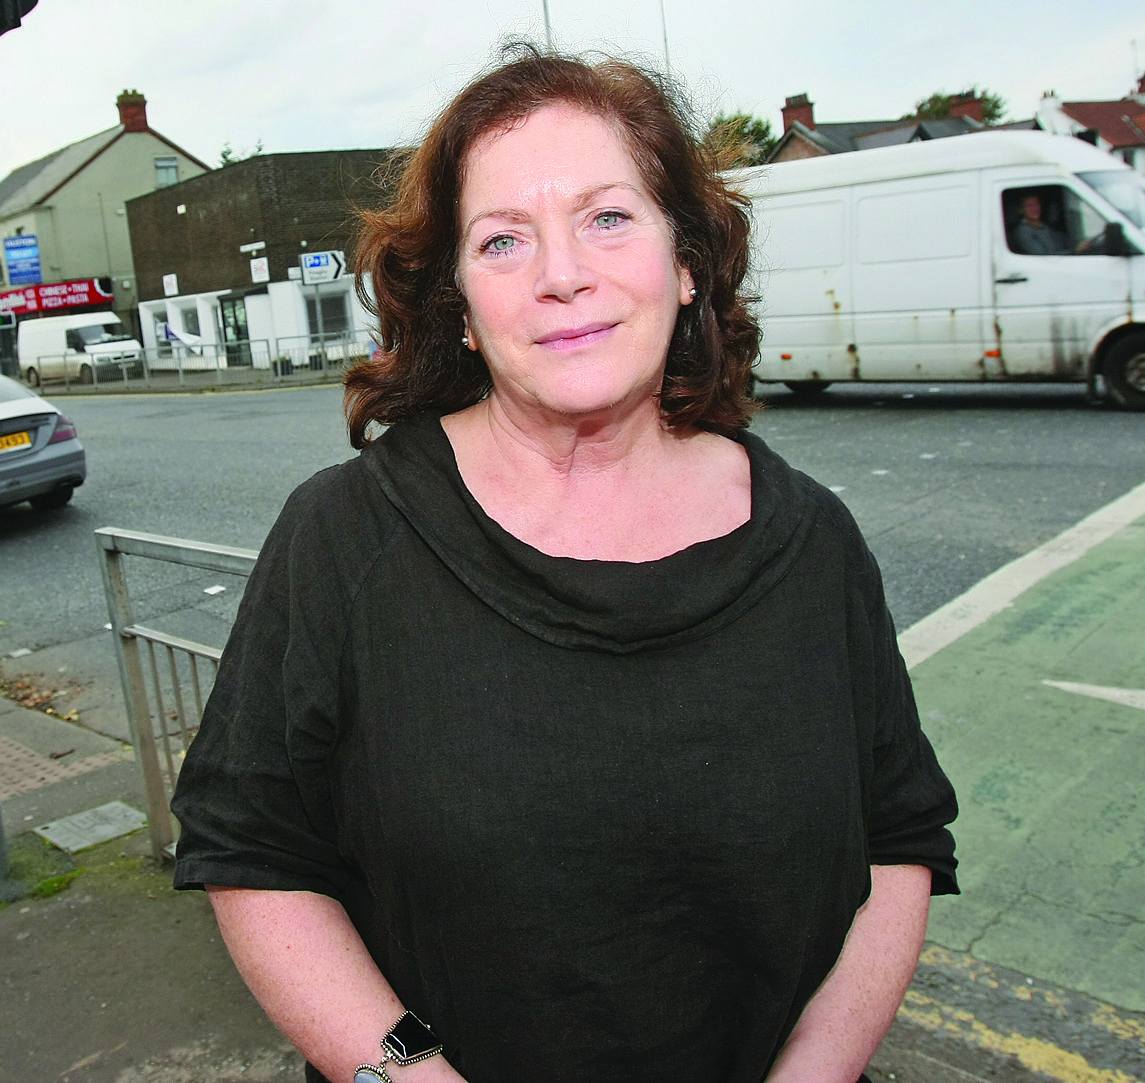 CALL: Cllr McAteer is concerned about nursing home residents with dementia